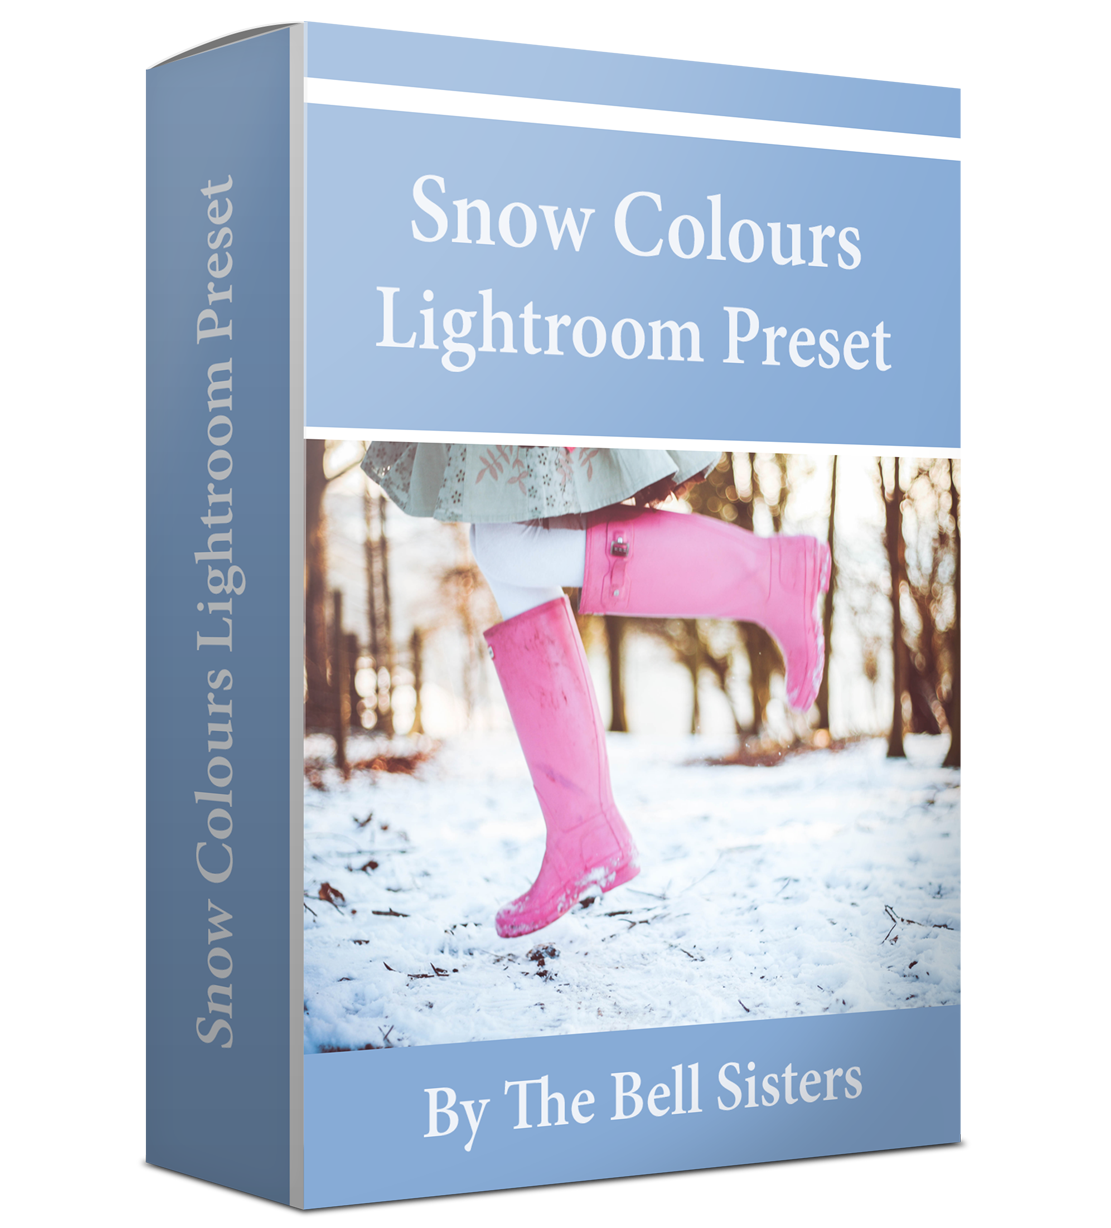 Snow Colours Lightroom Preset Pack